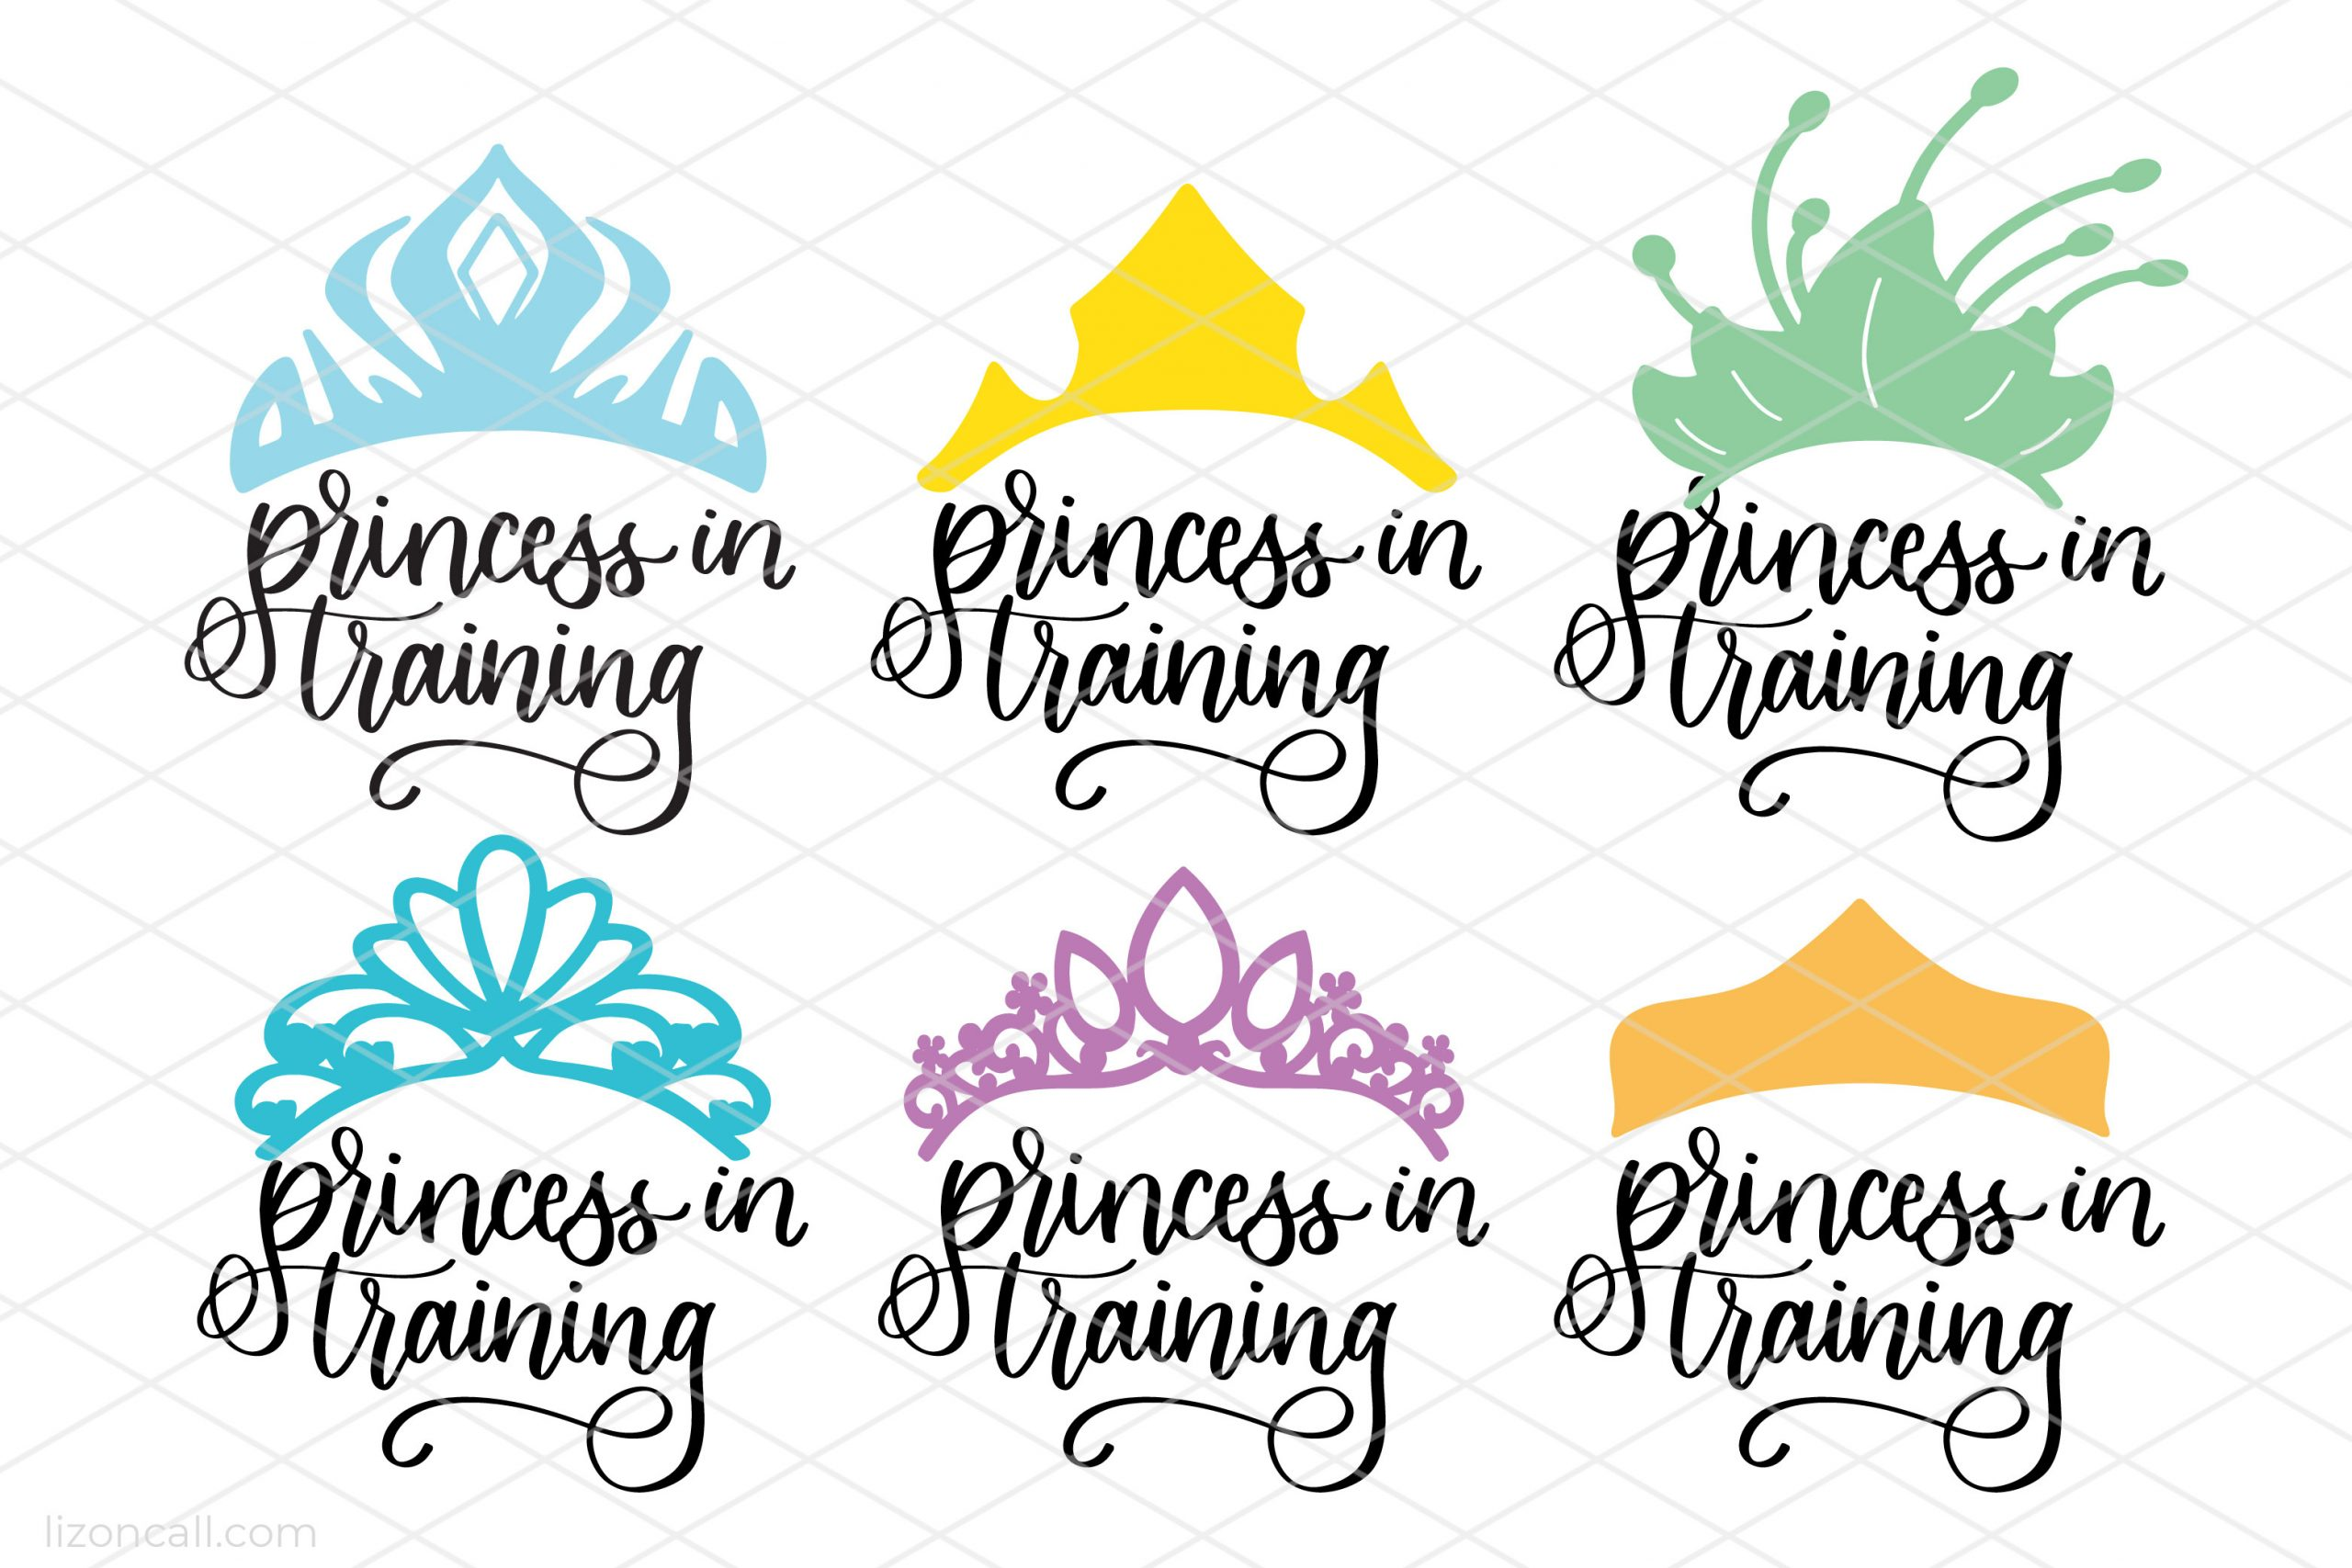 6 different princess crown designs